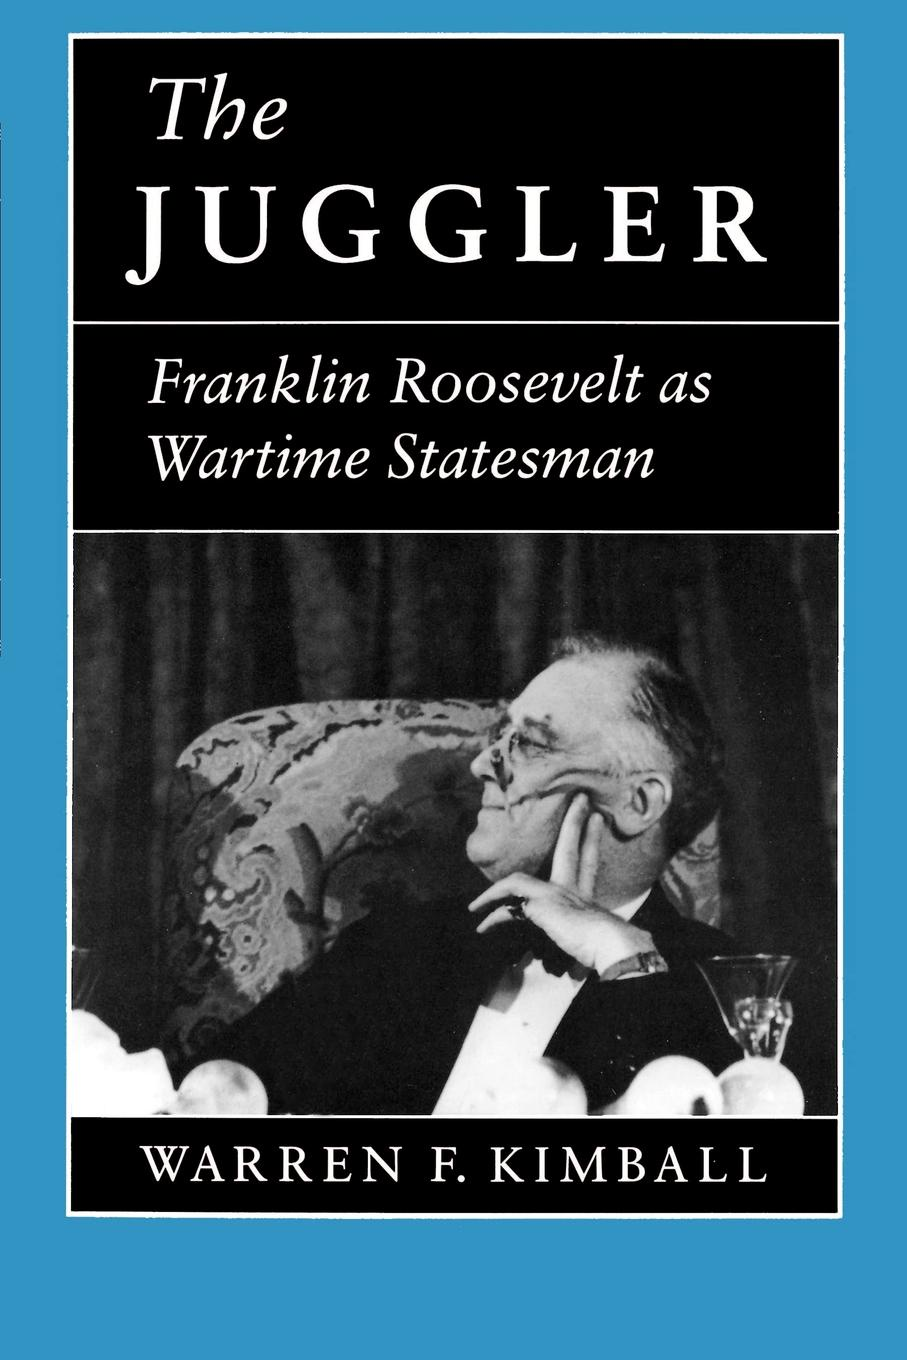 Warren F. Kimball The Juggler. Franklin Roosevelt as Wartime Statesman the unwomanly face of war